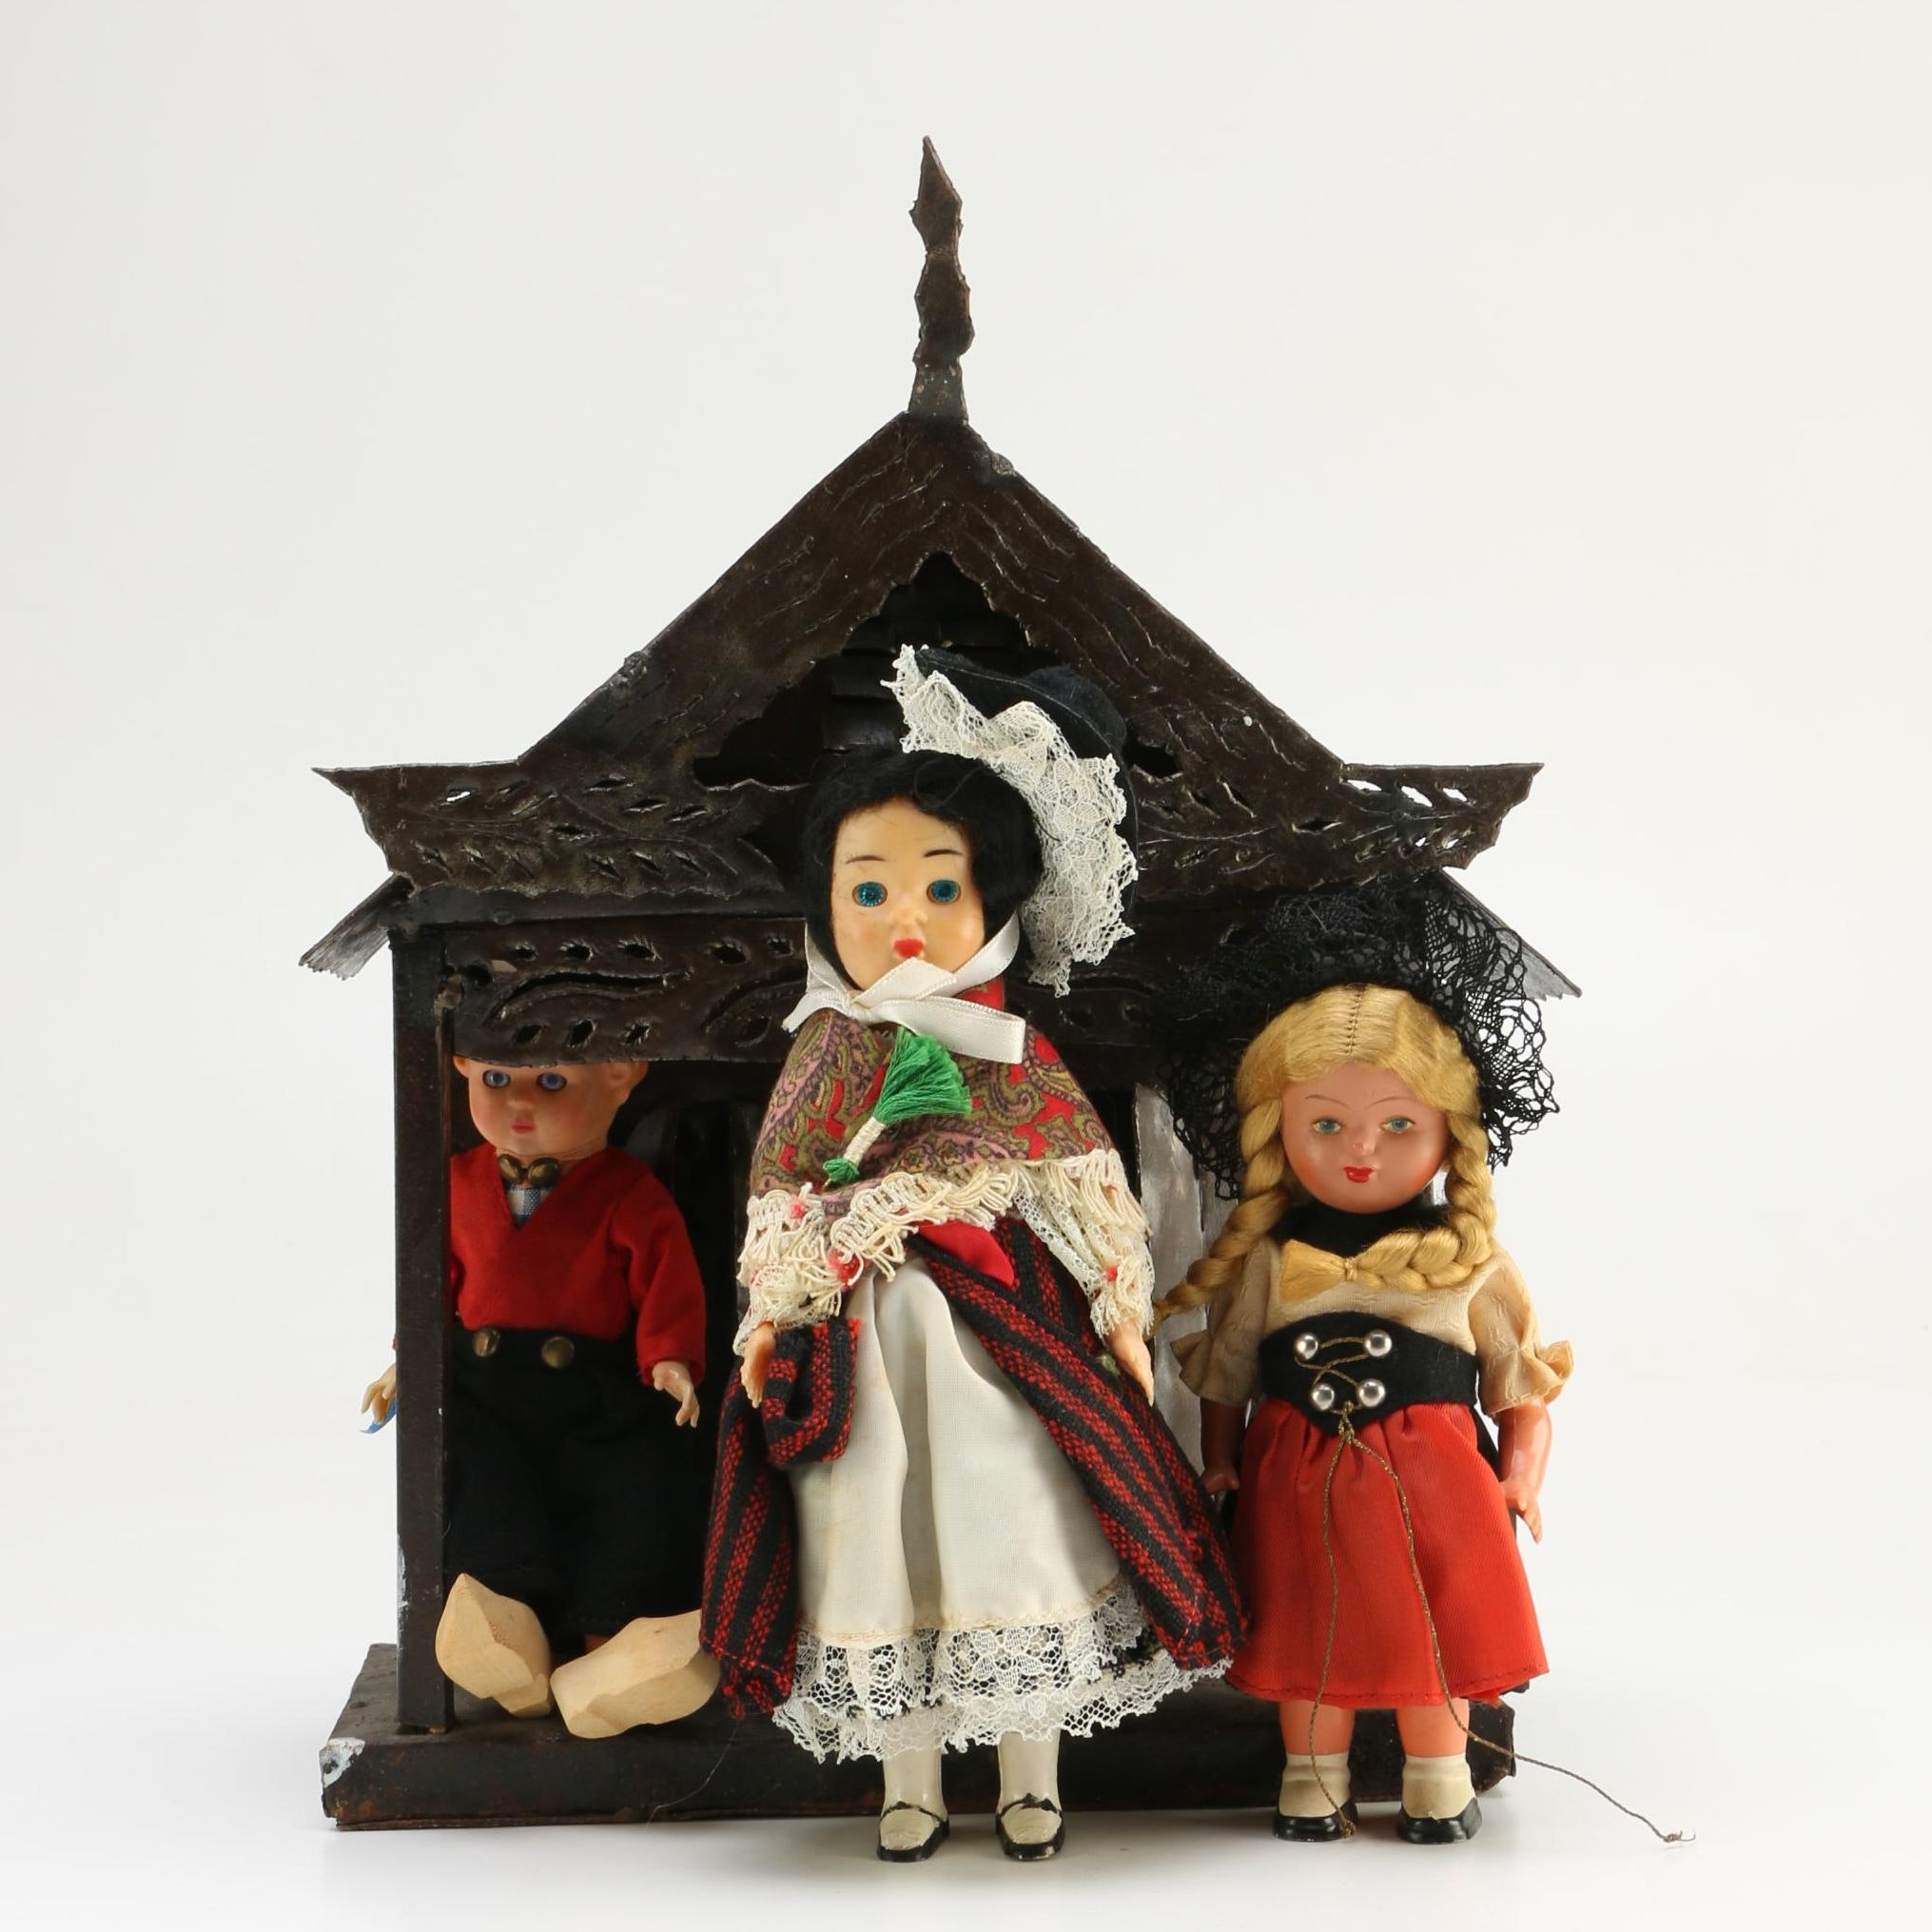 Dolls and Decorative House